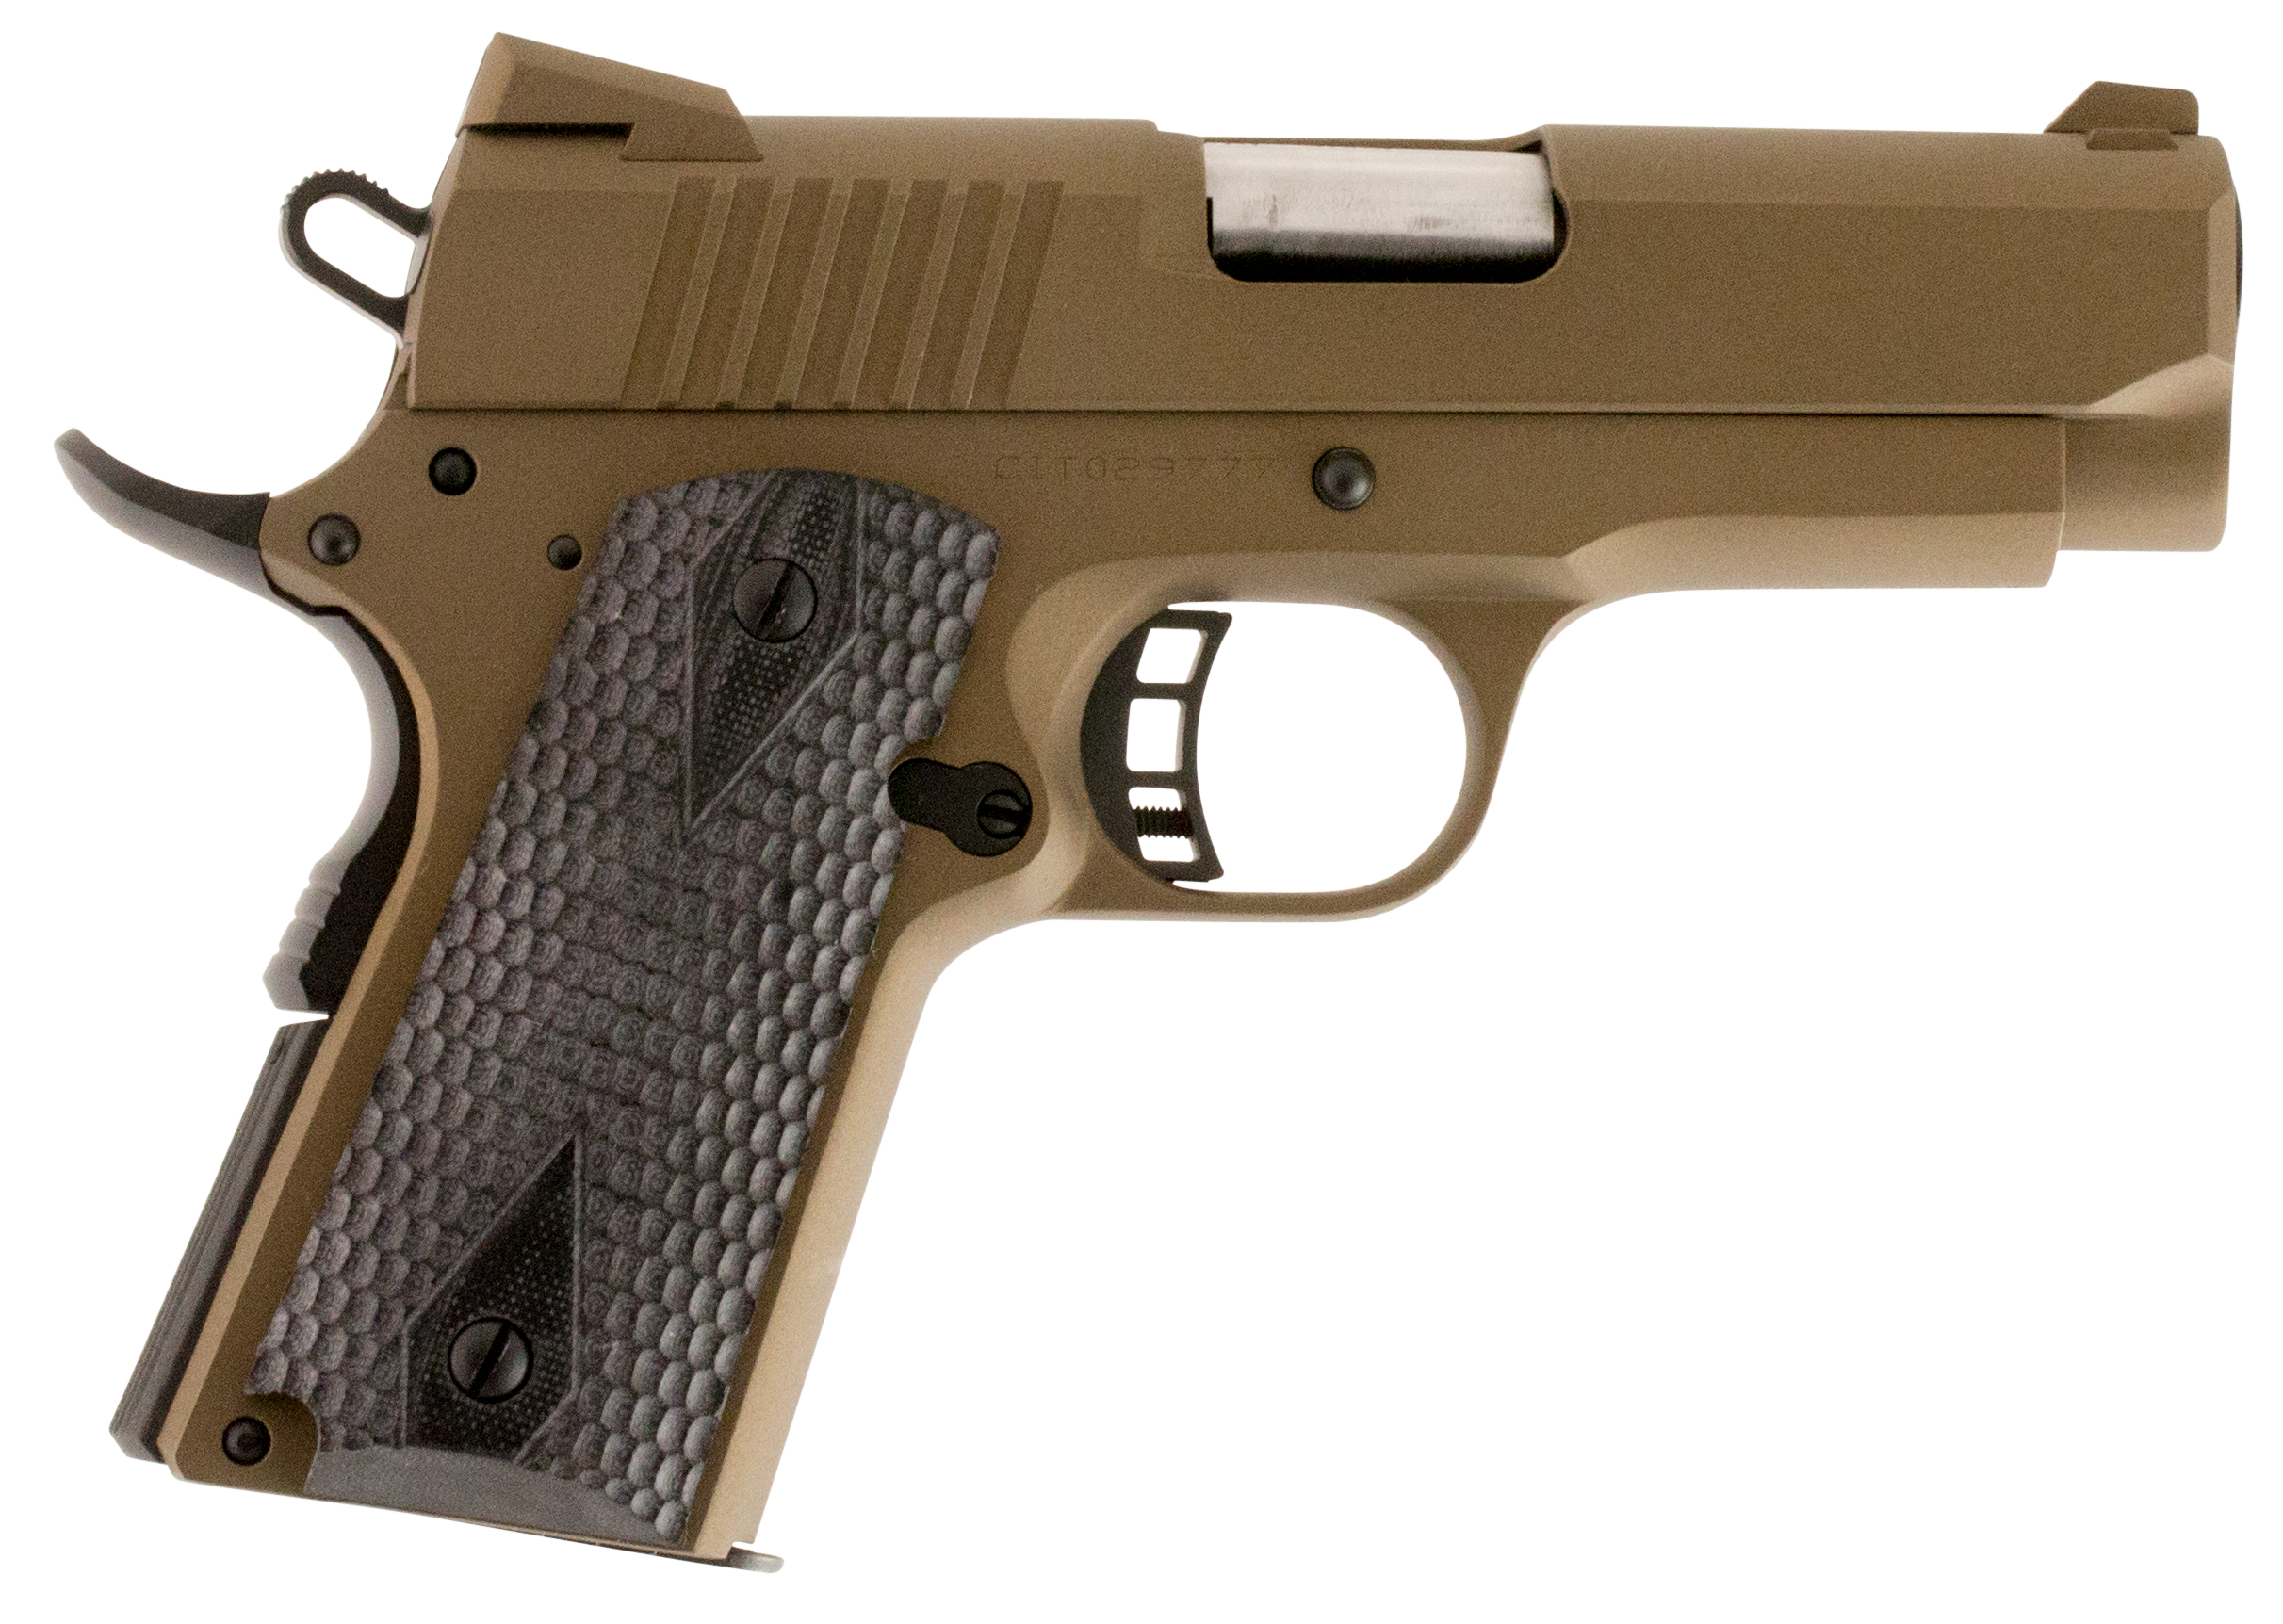 Citadel C9MMCS148H00 M-1911 Officer Compact SAO 9mm 3.5